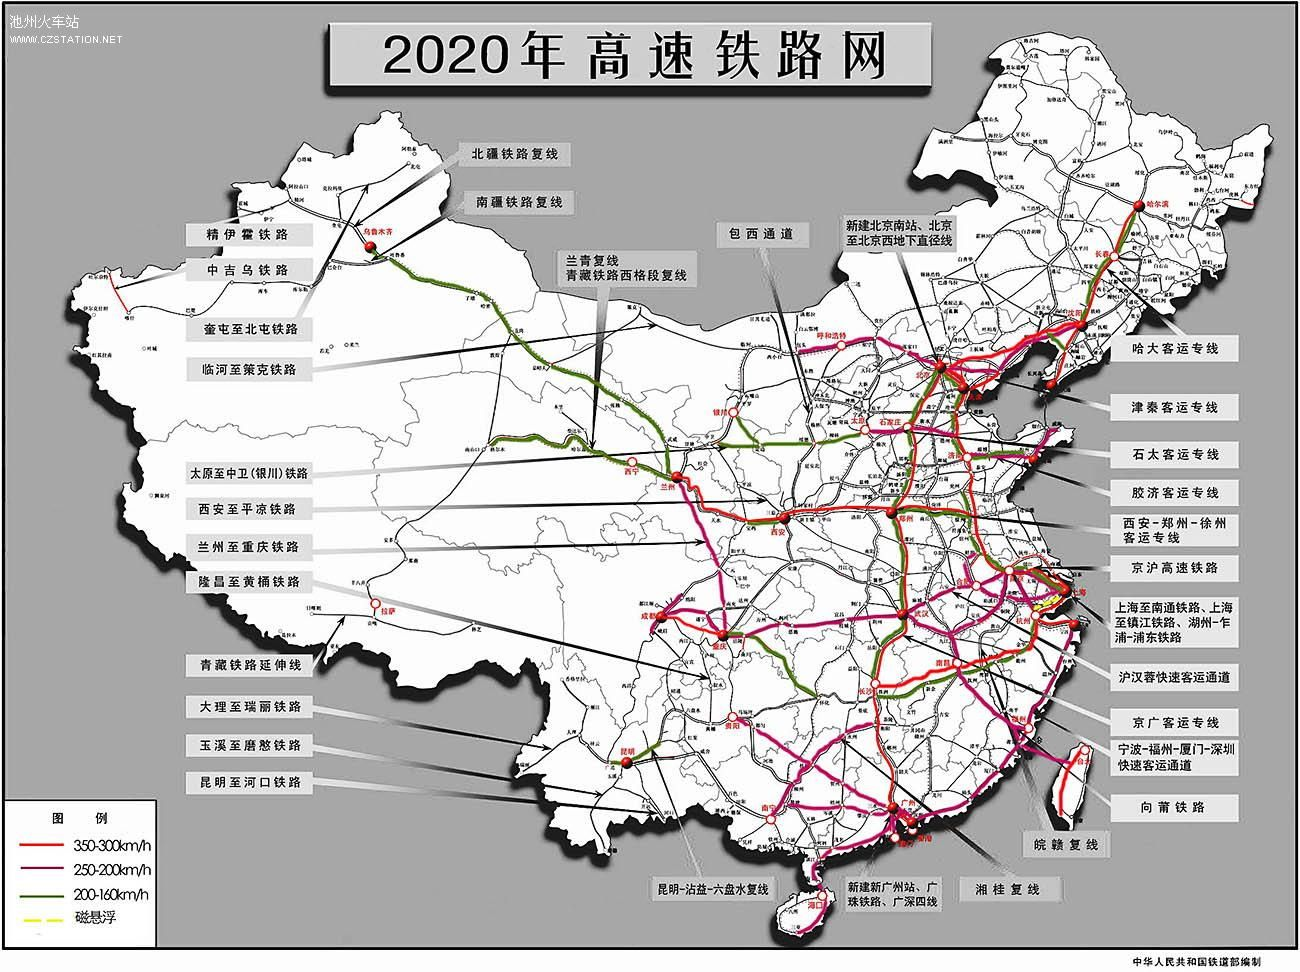 2020 HSR Map Infrastructure of China Pinterest Speed training